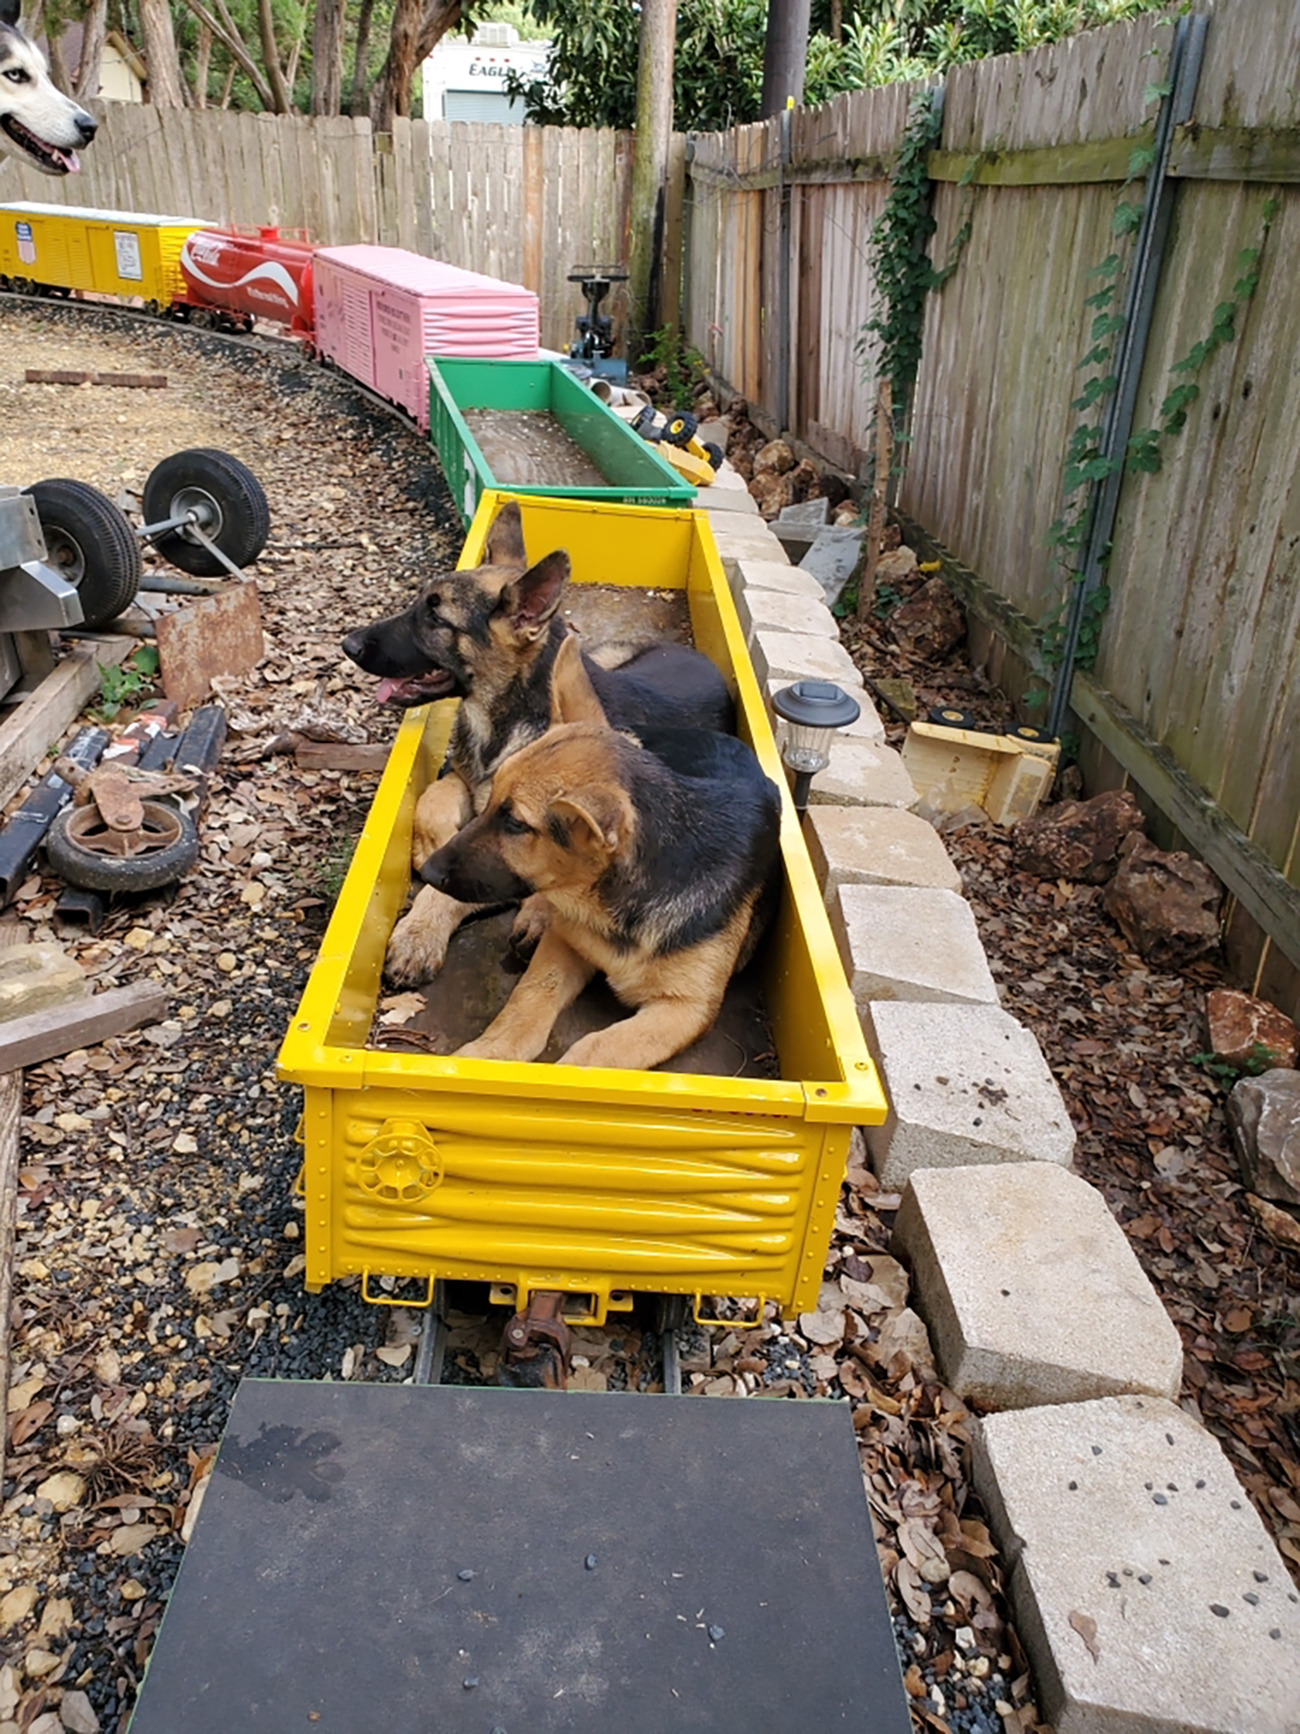 two dogs in yellow box car